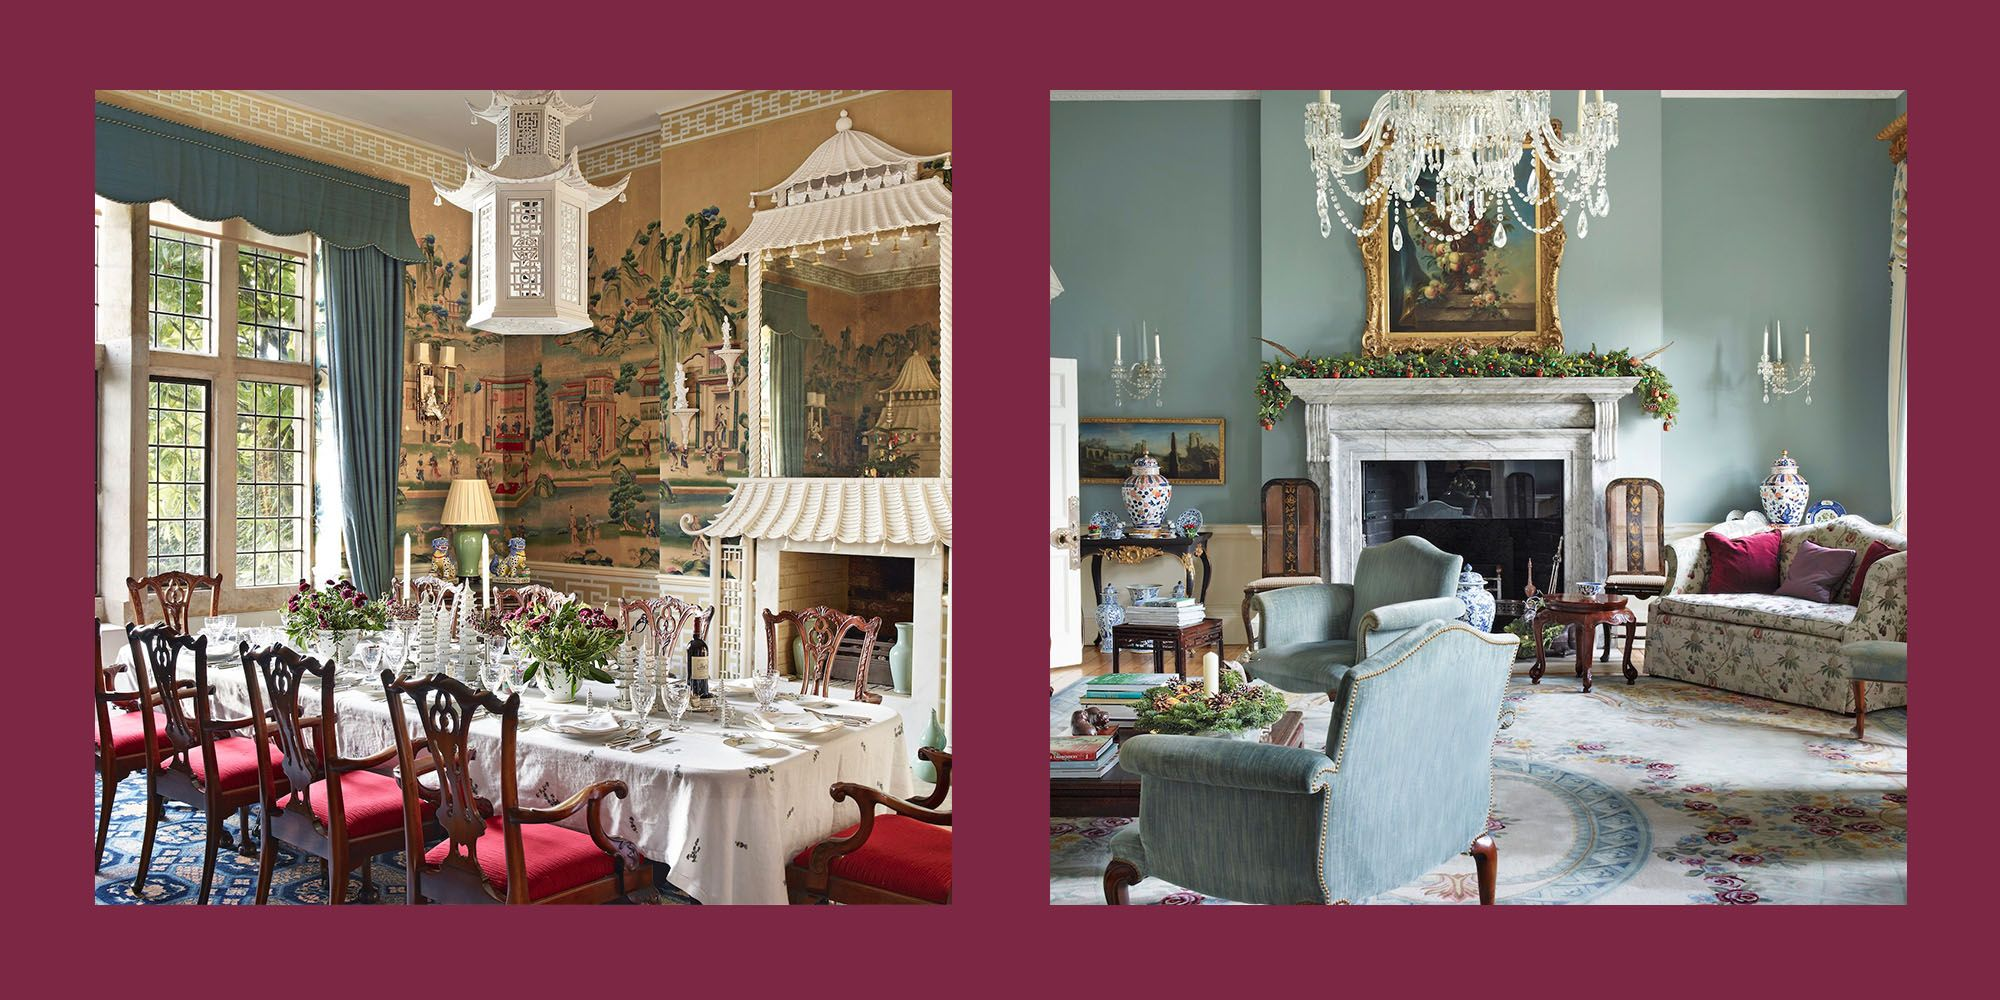 A Look Inside a Fully Bedecked Georgian Manor at Christmas